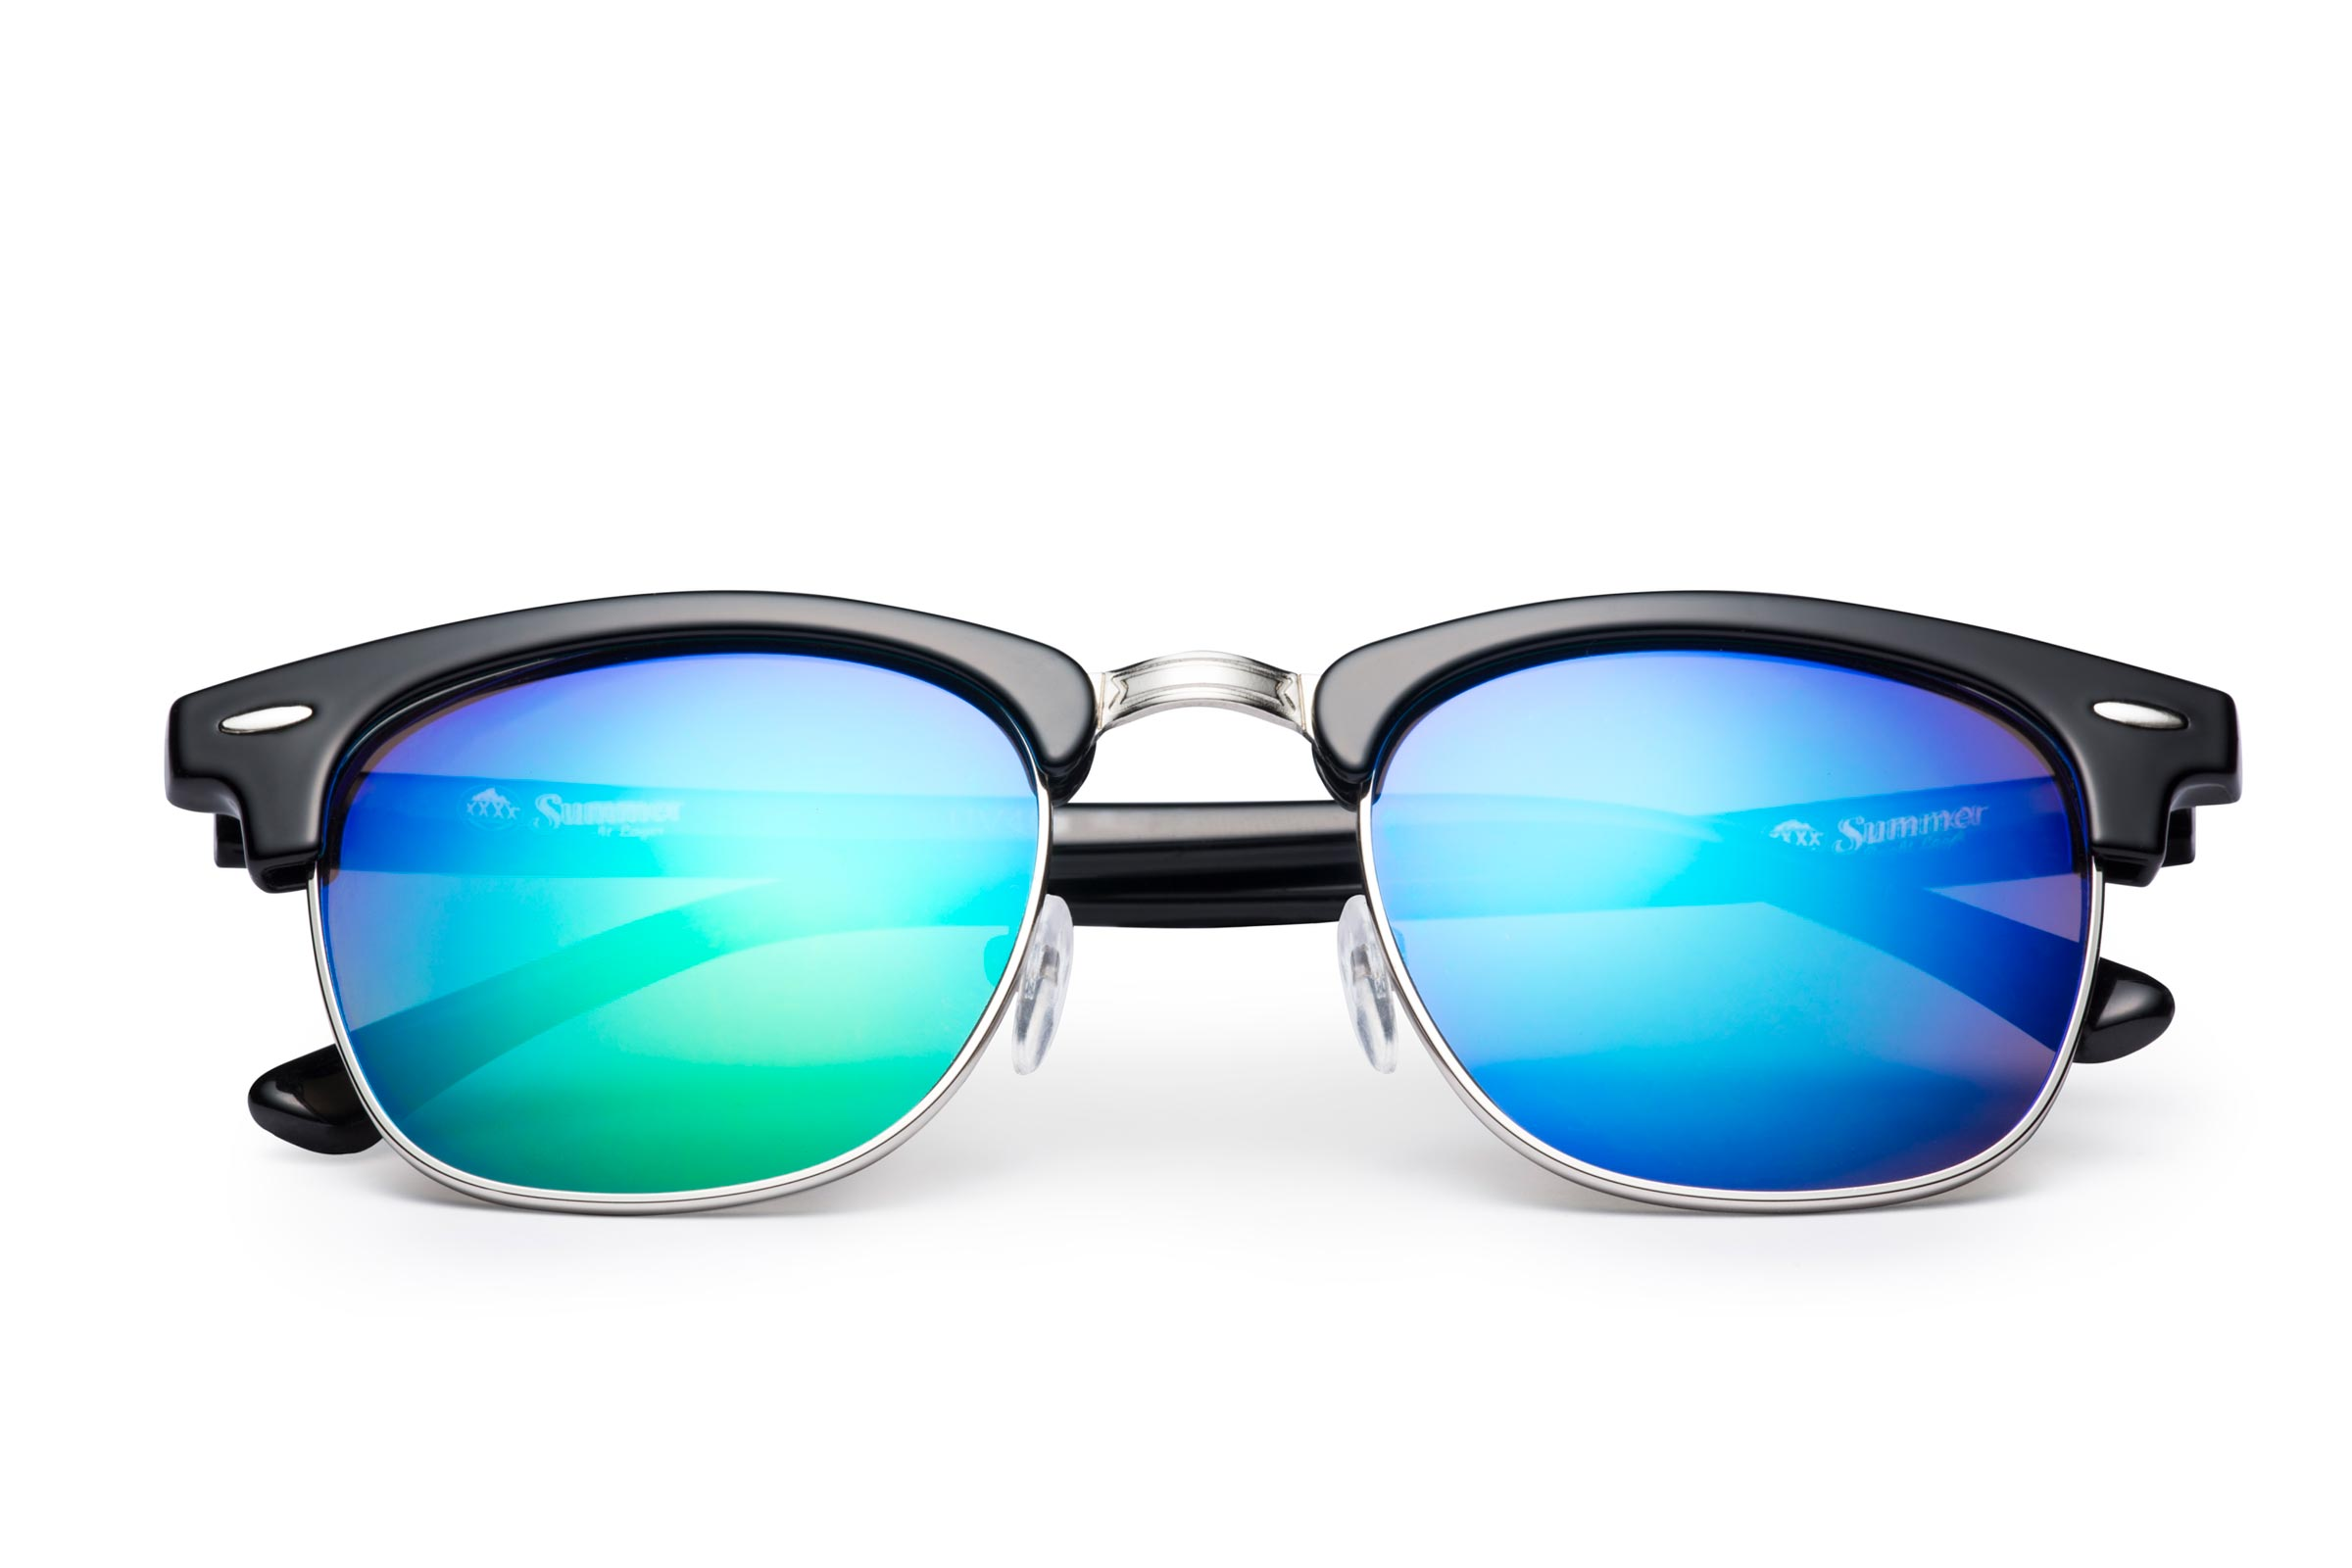 black and wire sunglasses with mirror blue lenses